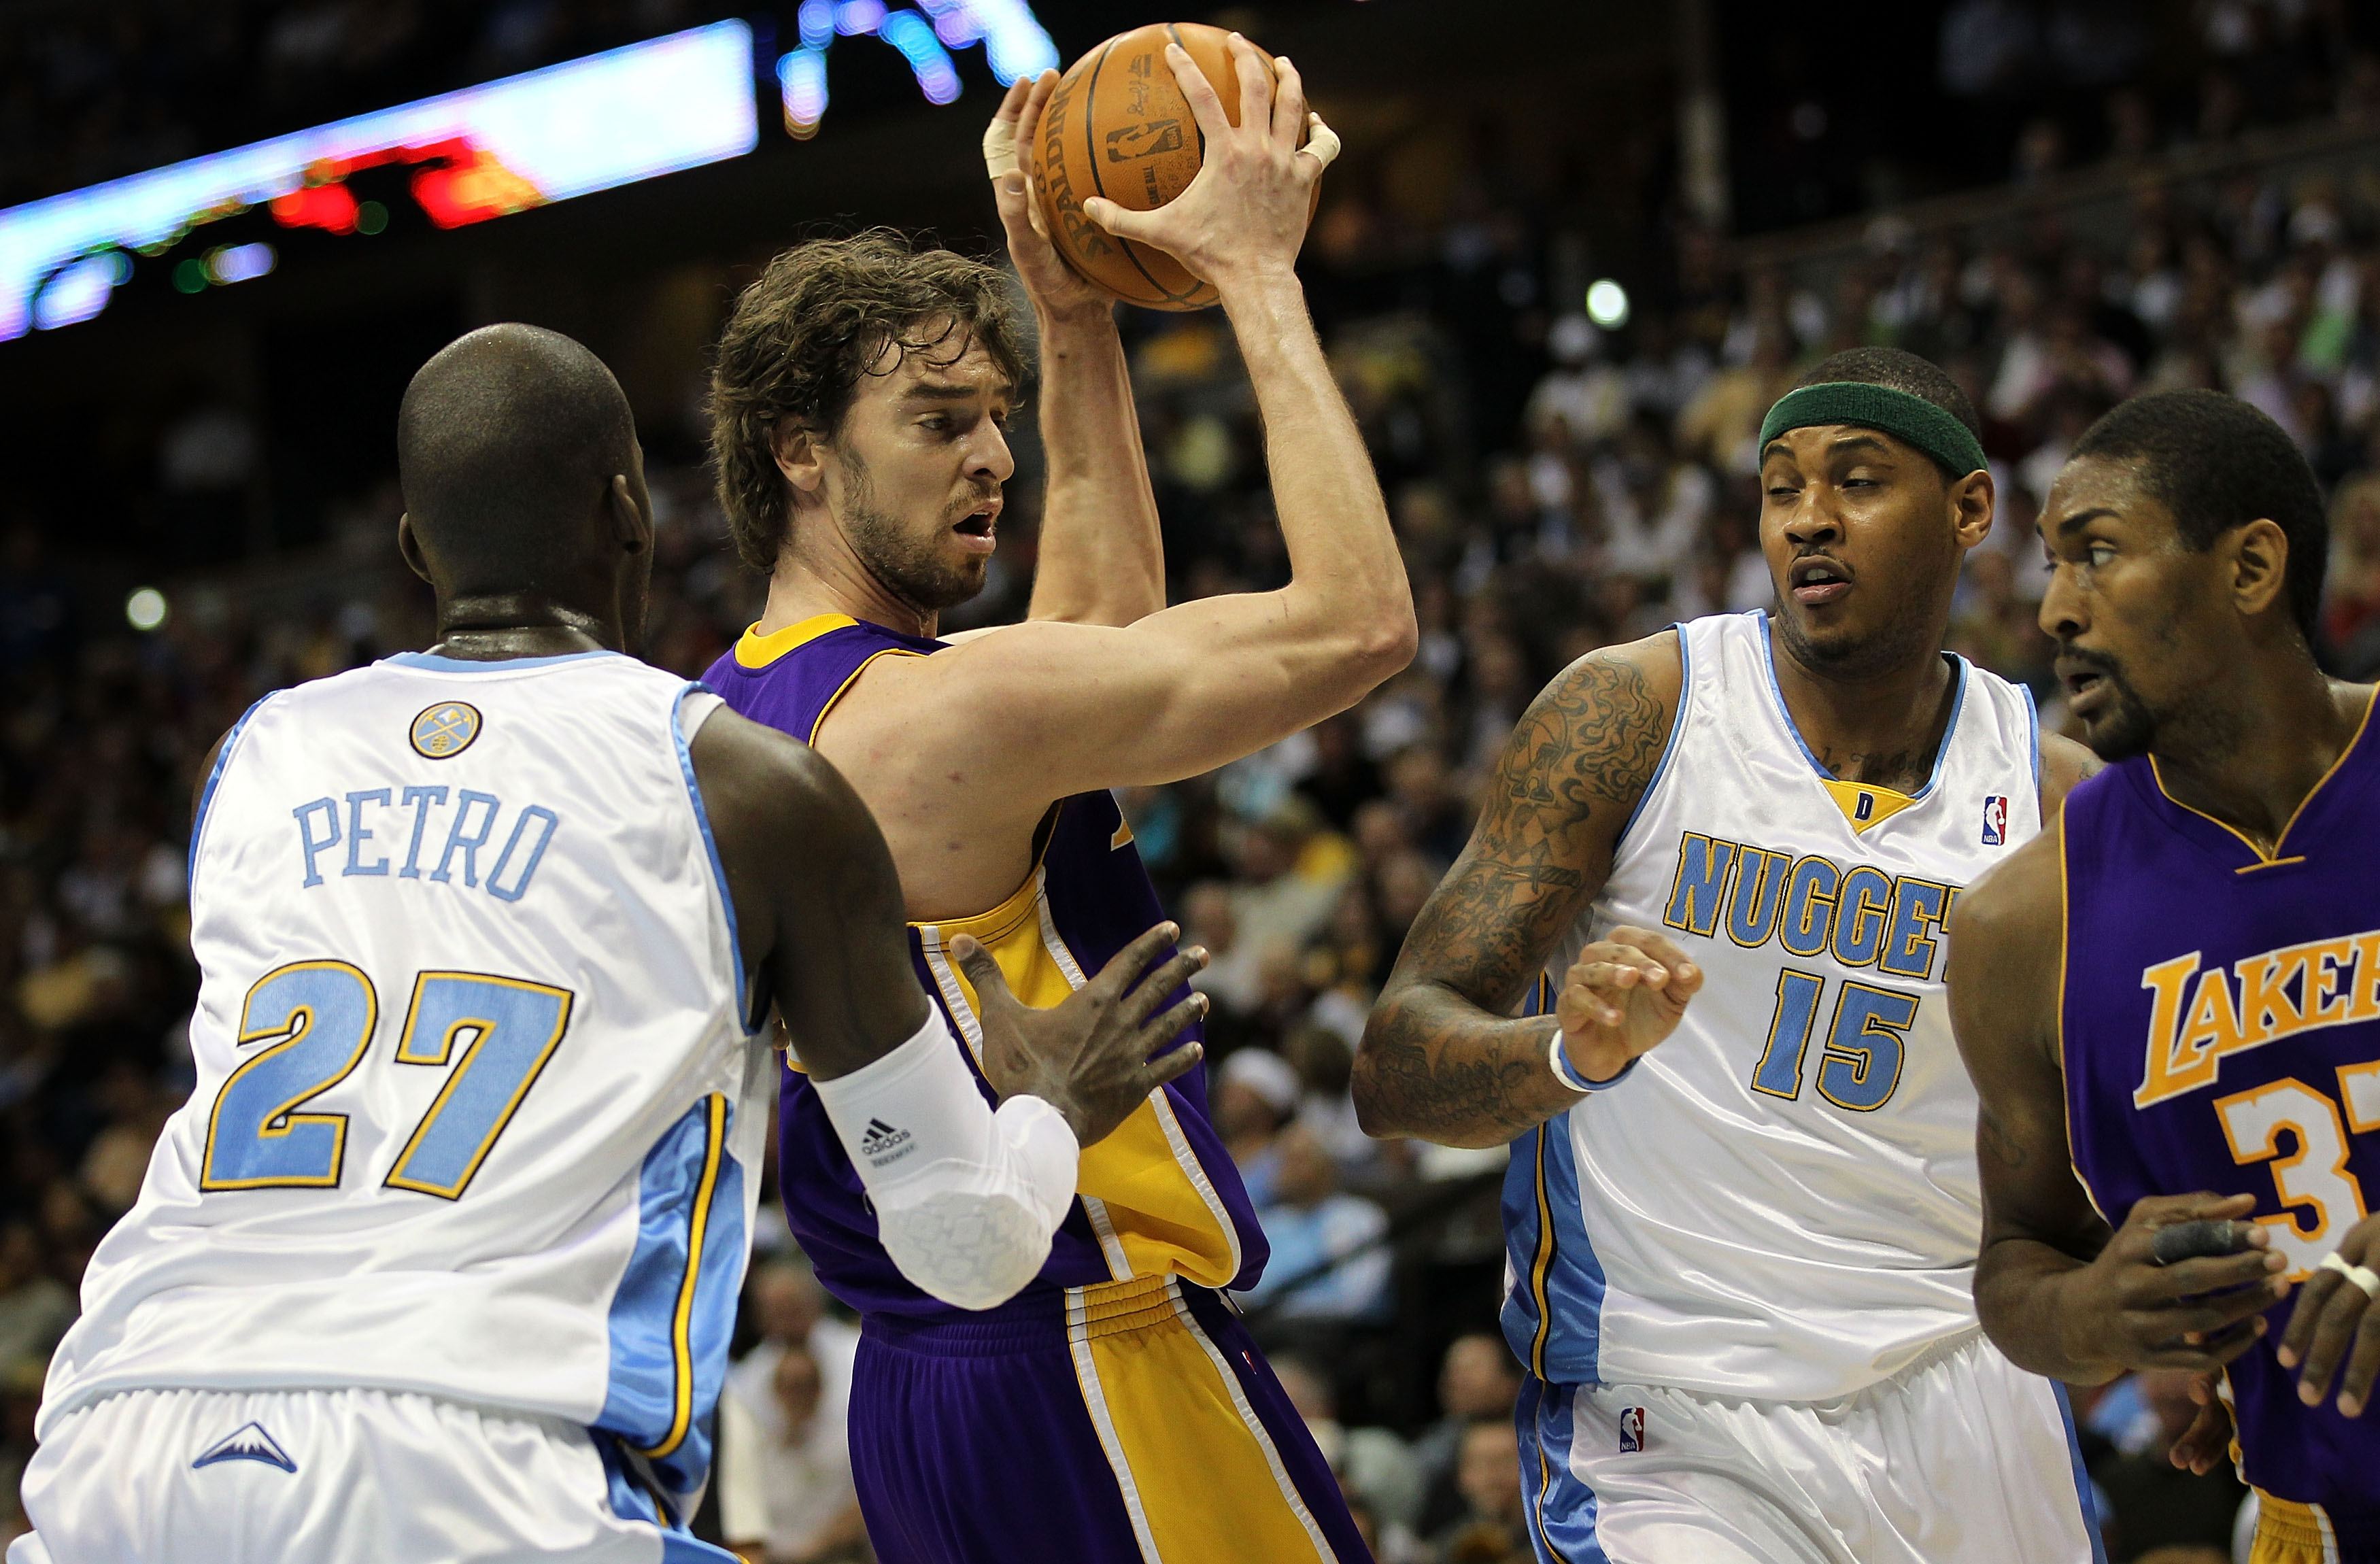 DENVER - APRIL 08:  Pau Gasol #16 of the Los Angeles Lakers controls the ball as Johan Petro #27 of the Denver Nuggets defends while Carmelo Anthony #15 of the Nuggets defends against Ron Artest #37 of the Lakers during NBA action at the Pepsi Center on A